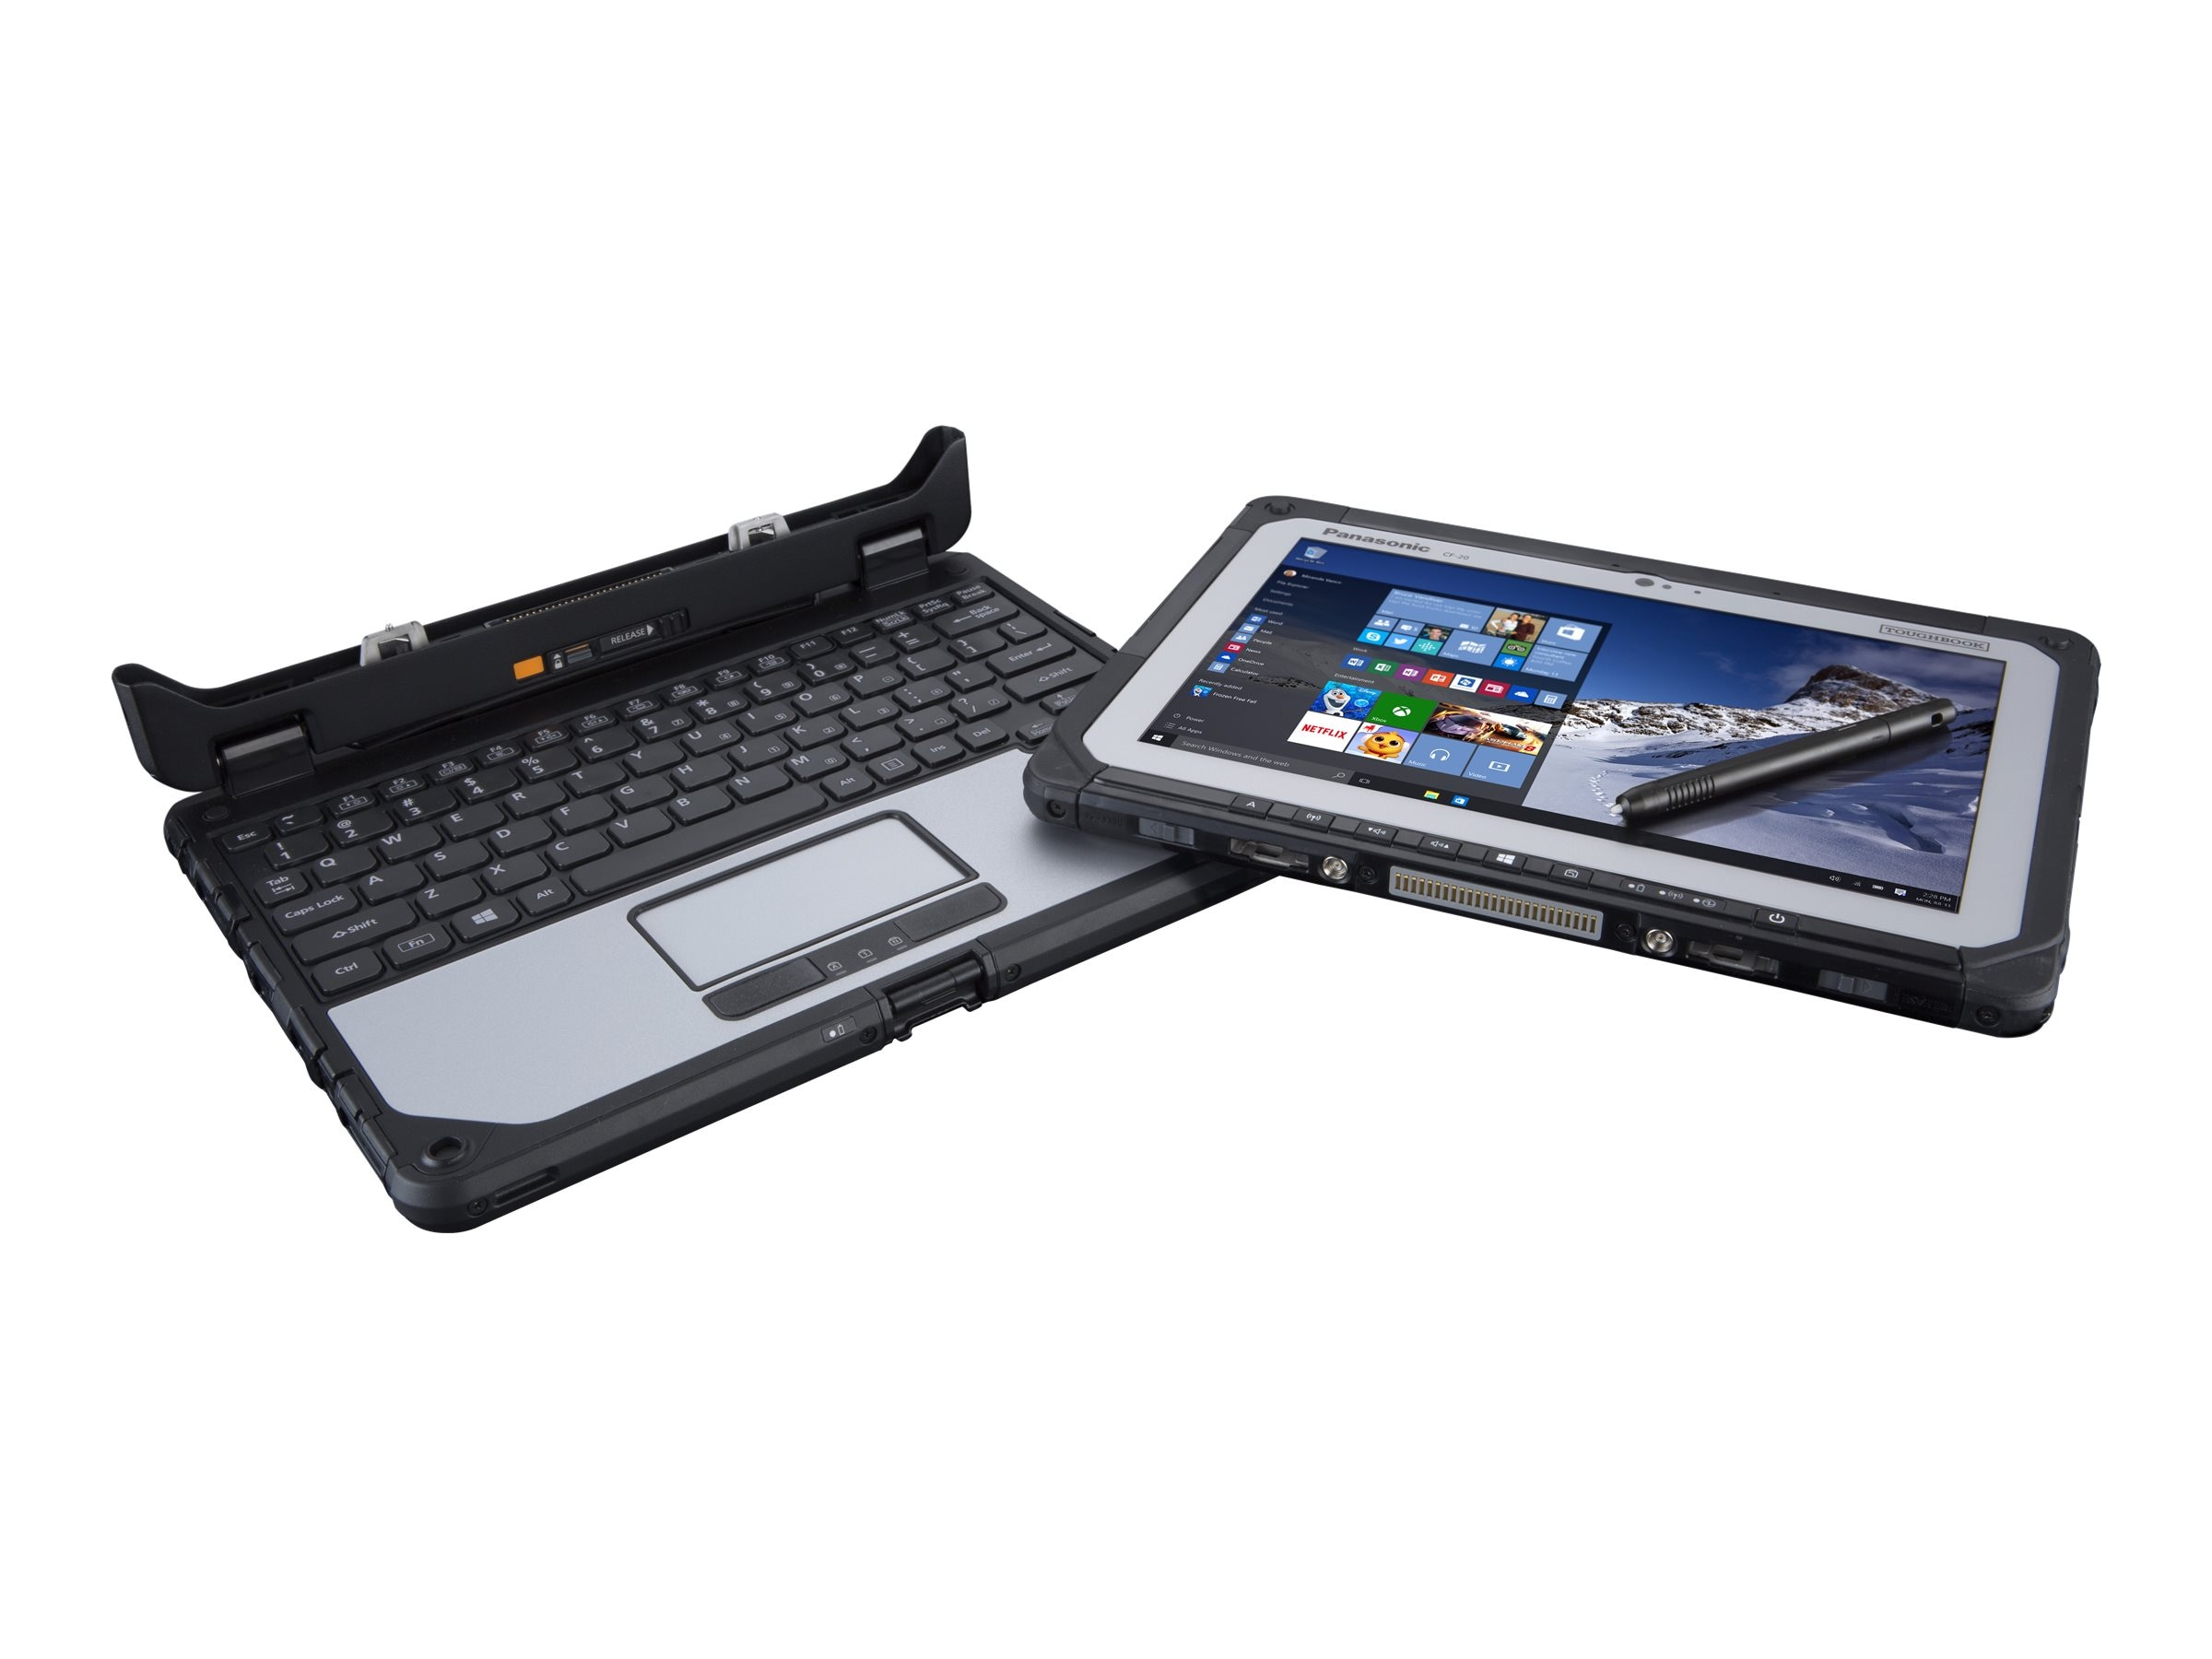 Panasonic Toughbook 20 vPro Core M5-6Y57 1.1GHz 10.1 WUXGA MT W7 (W10P COA), CF-20C5014KM